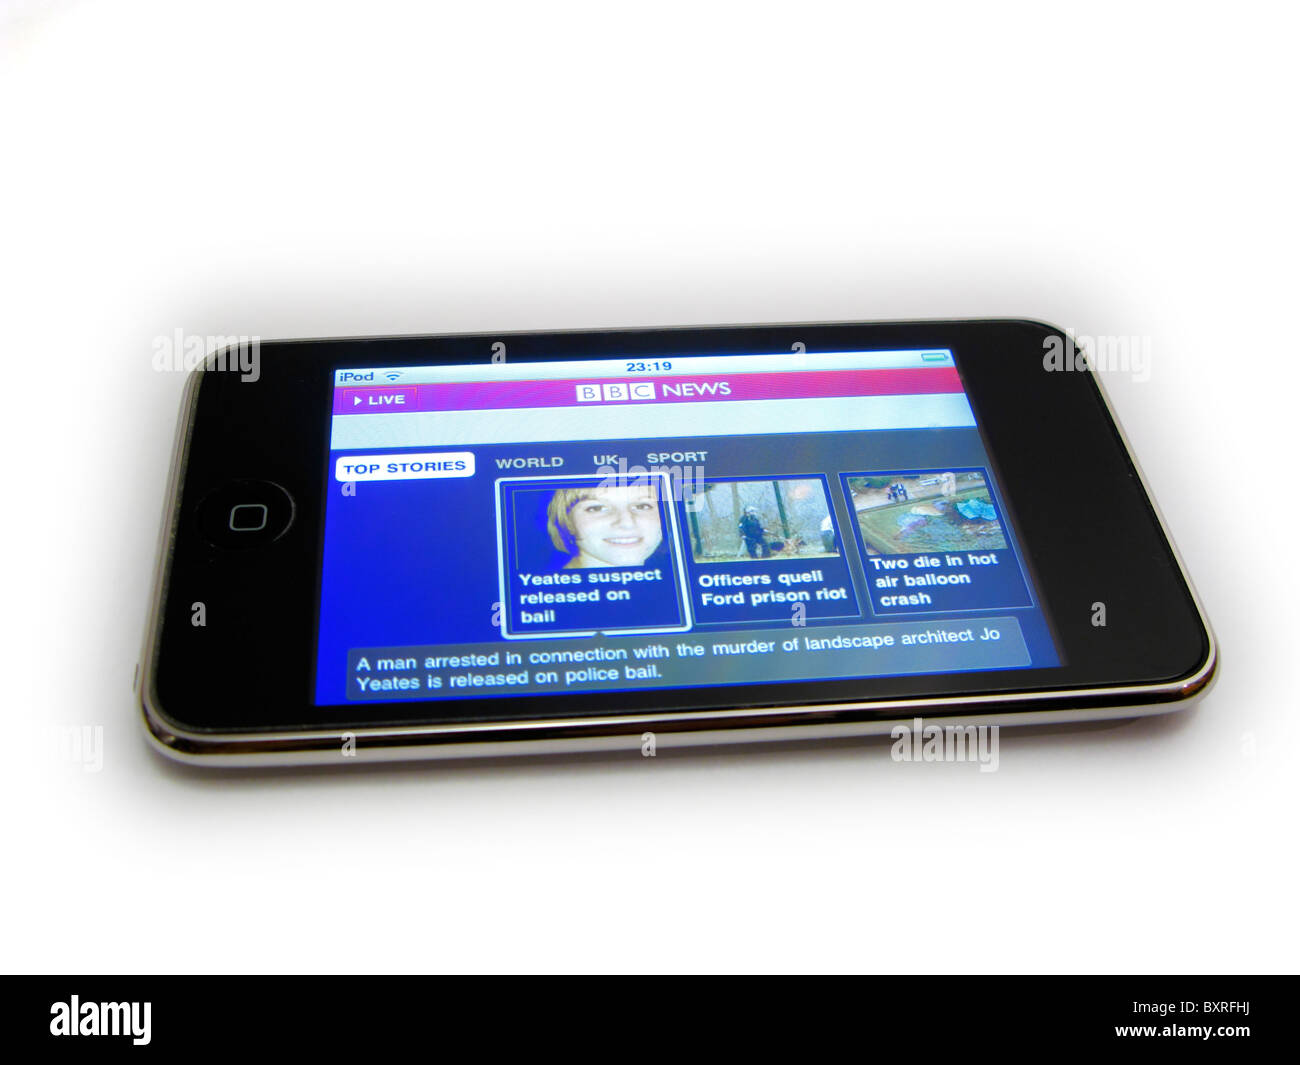 cutout of ipod touch showing bbc news home page Joanna Yeates murder enquiry on white background - Stock Image